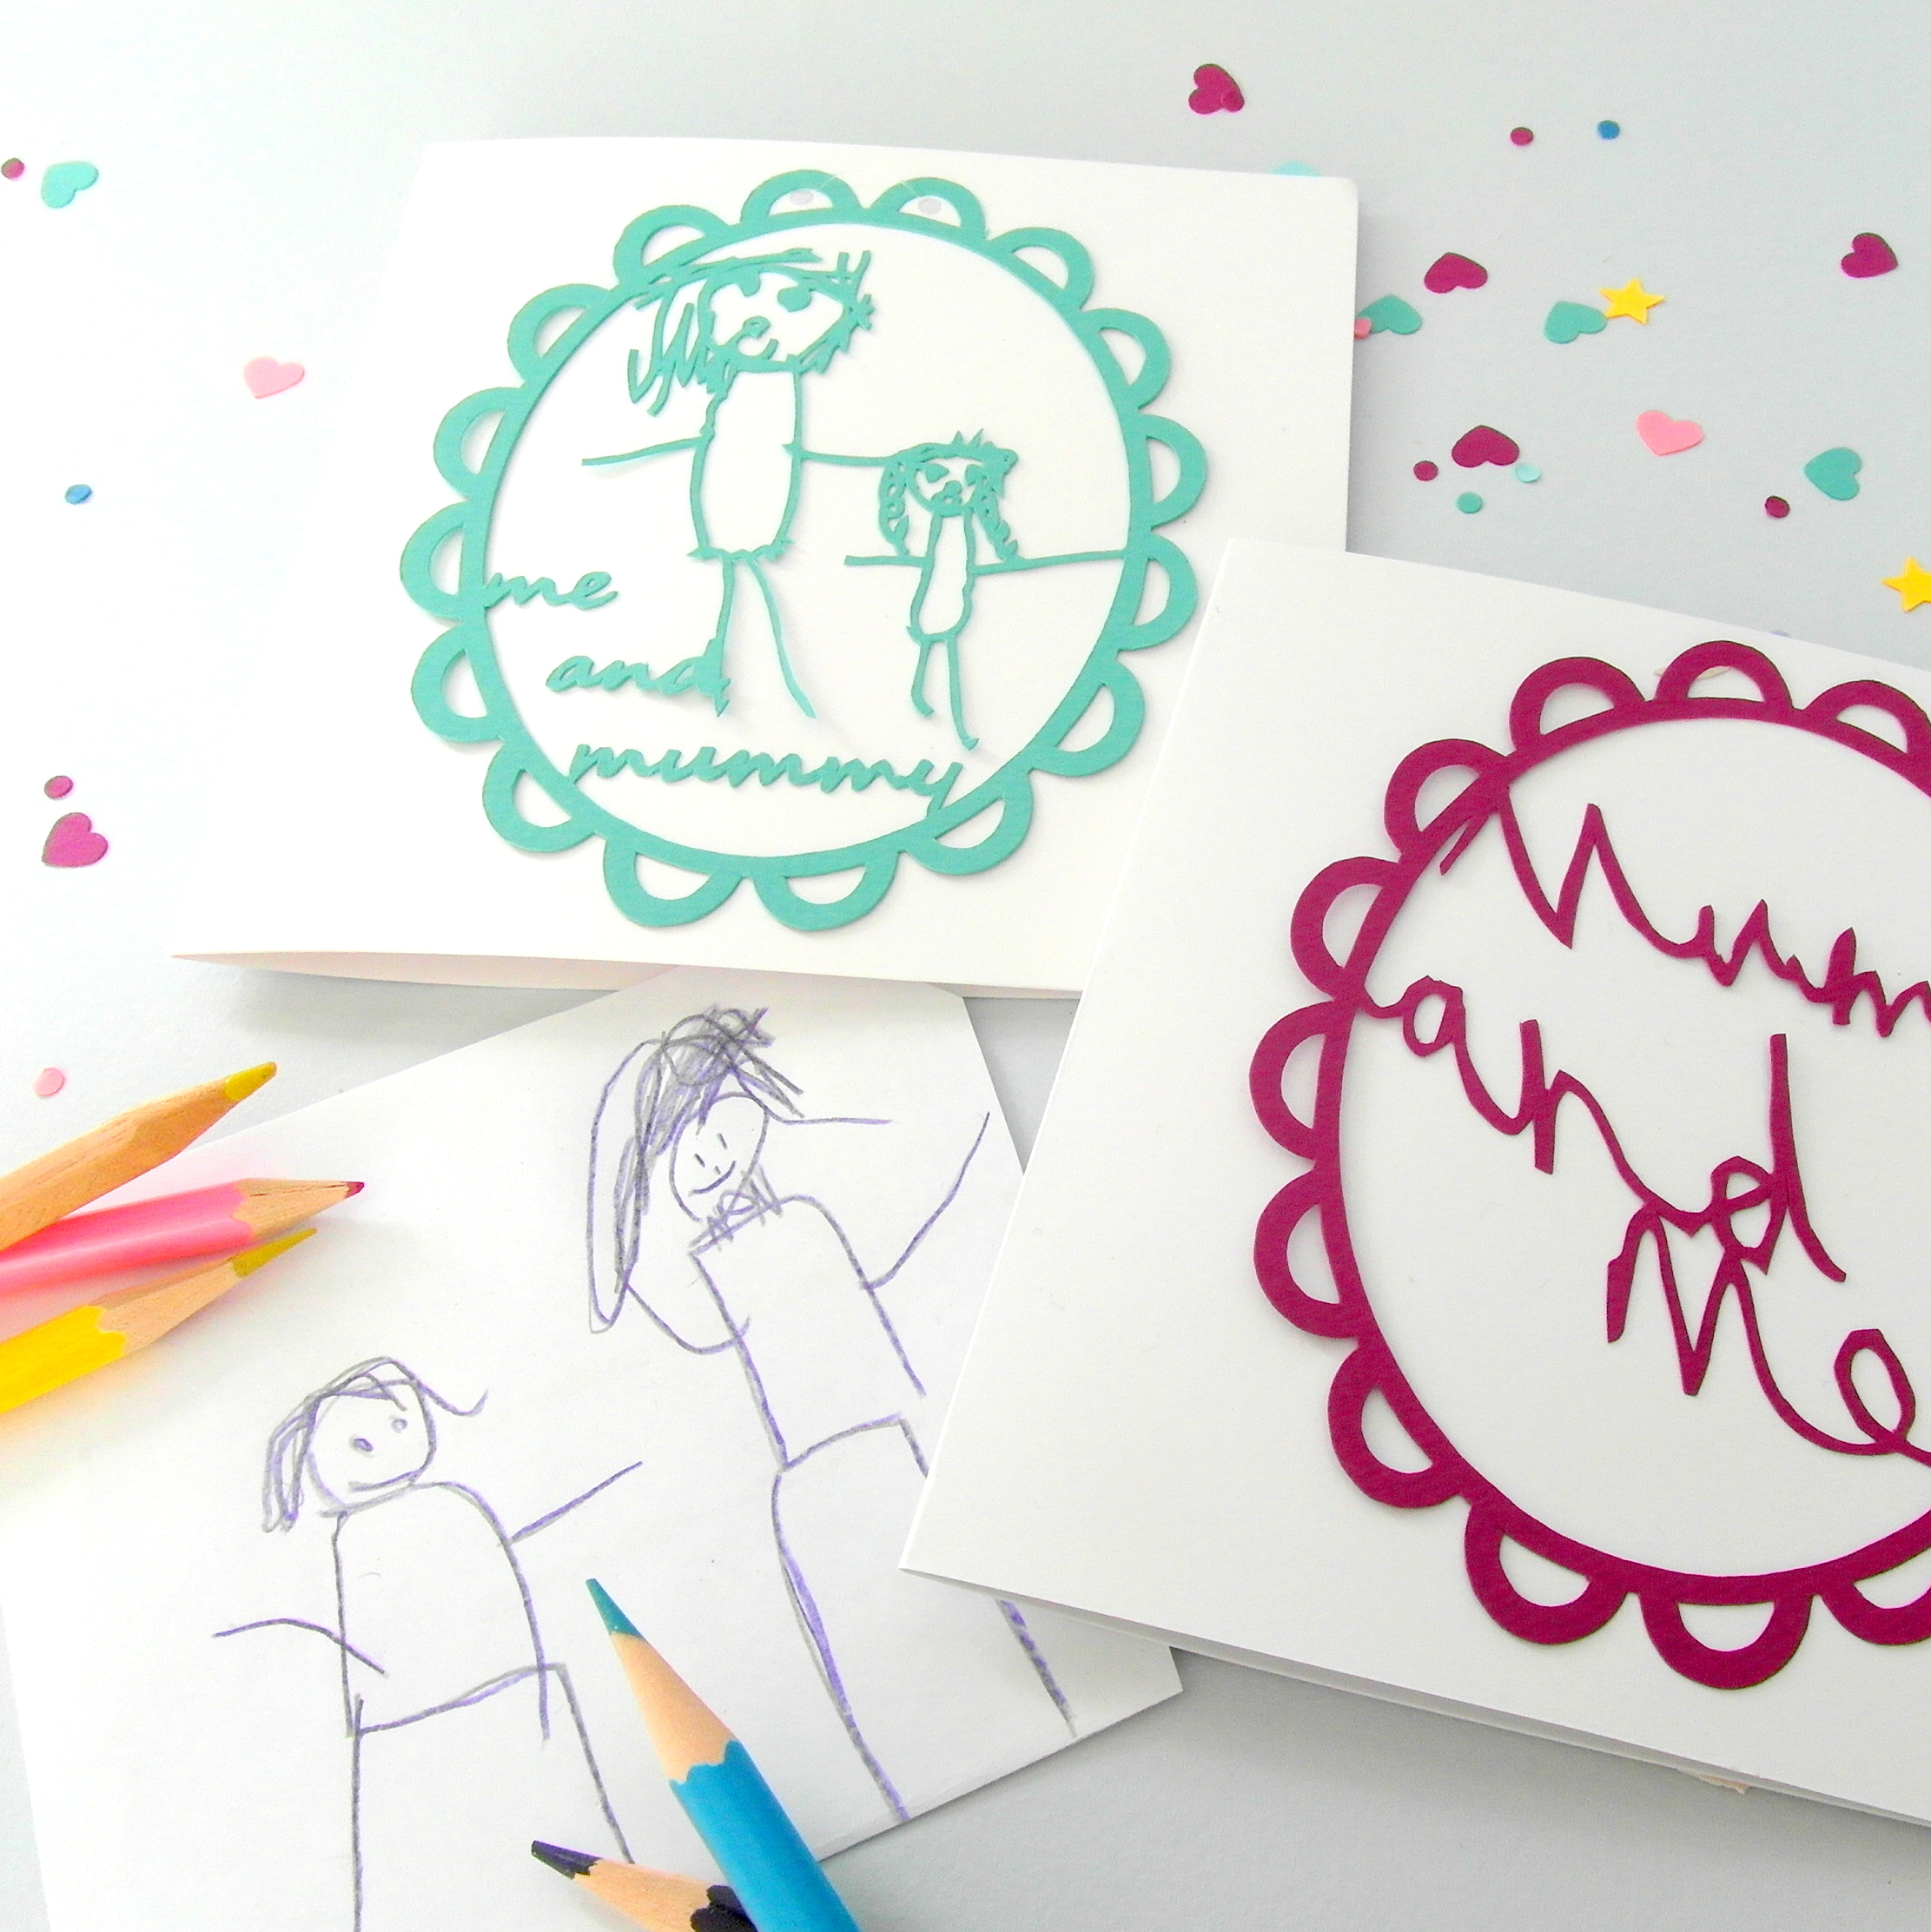 Papercut created from child's original drawing or hand written message